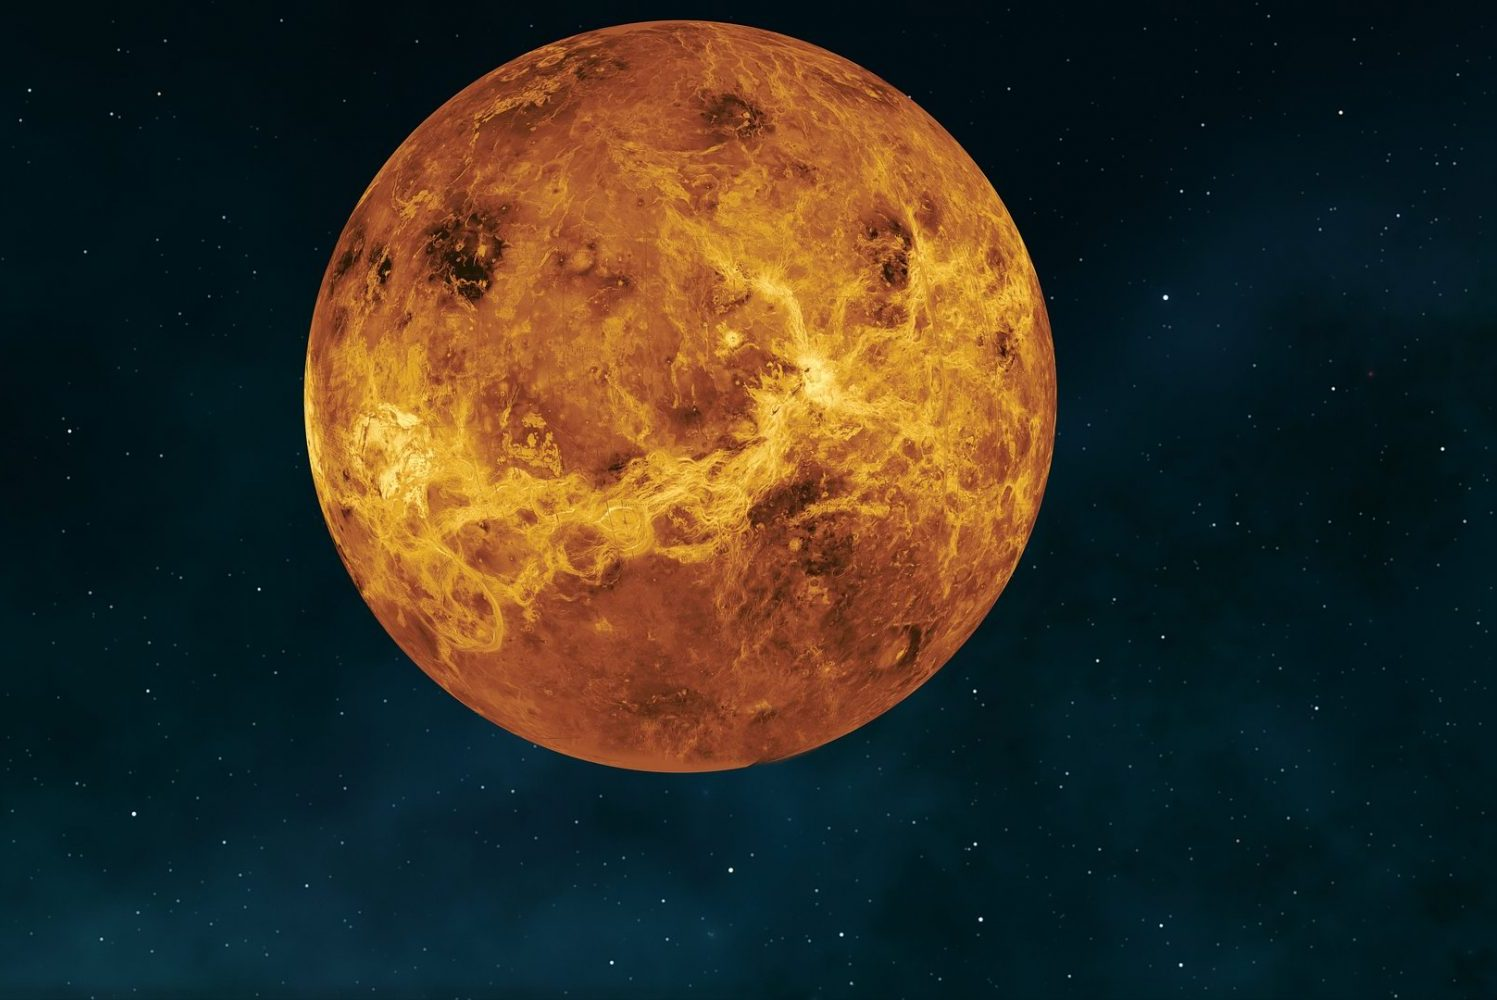 An image of Venus in an article about science and sci-fi.